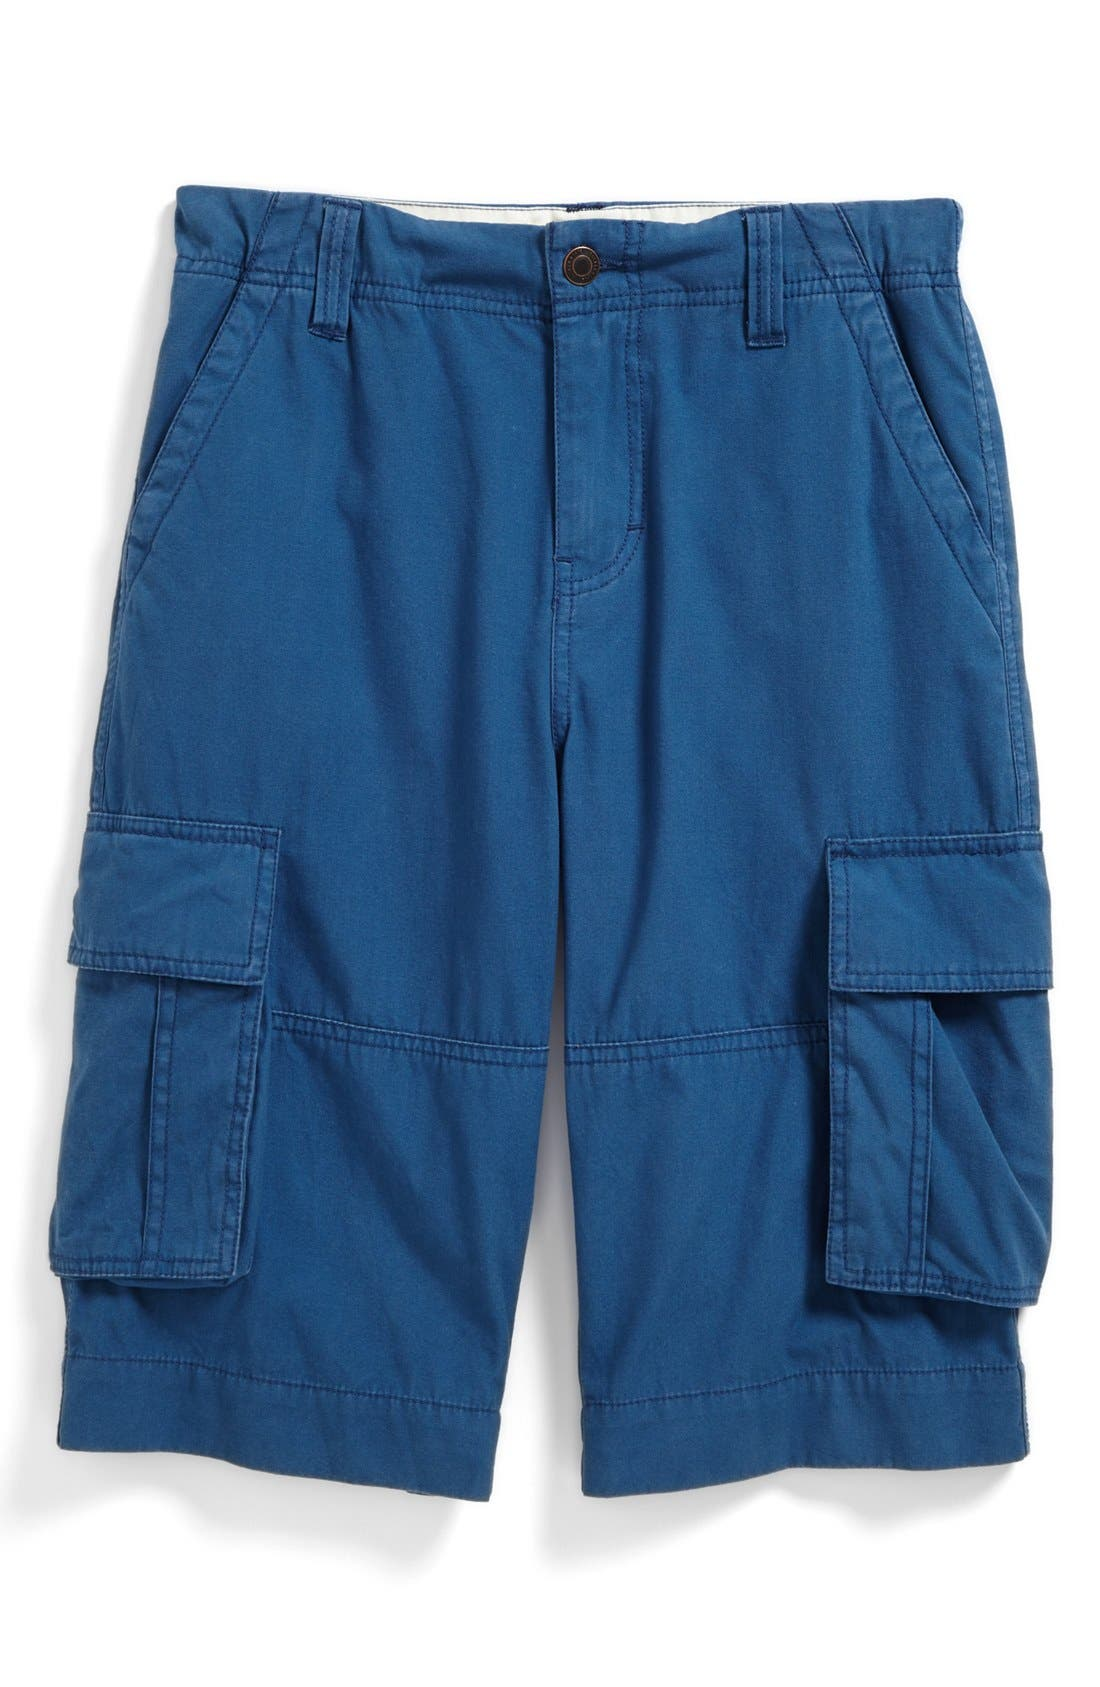 Main Image - Tucker + Tate Cargo Shorts (Big Boys)